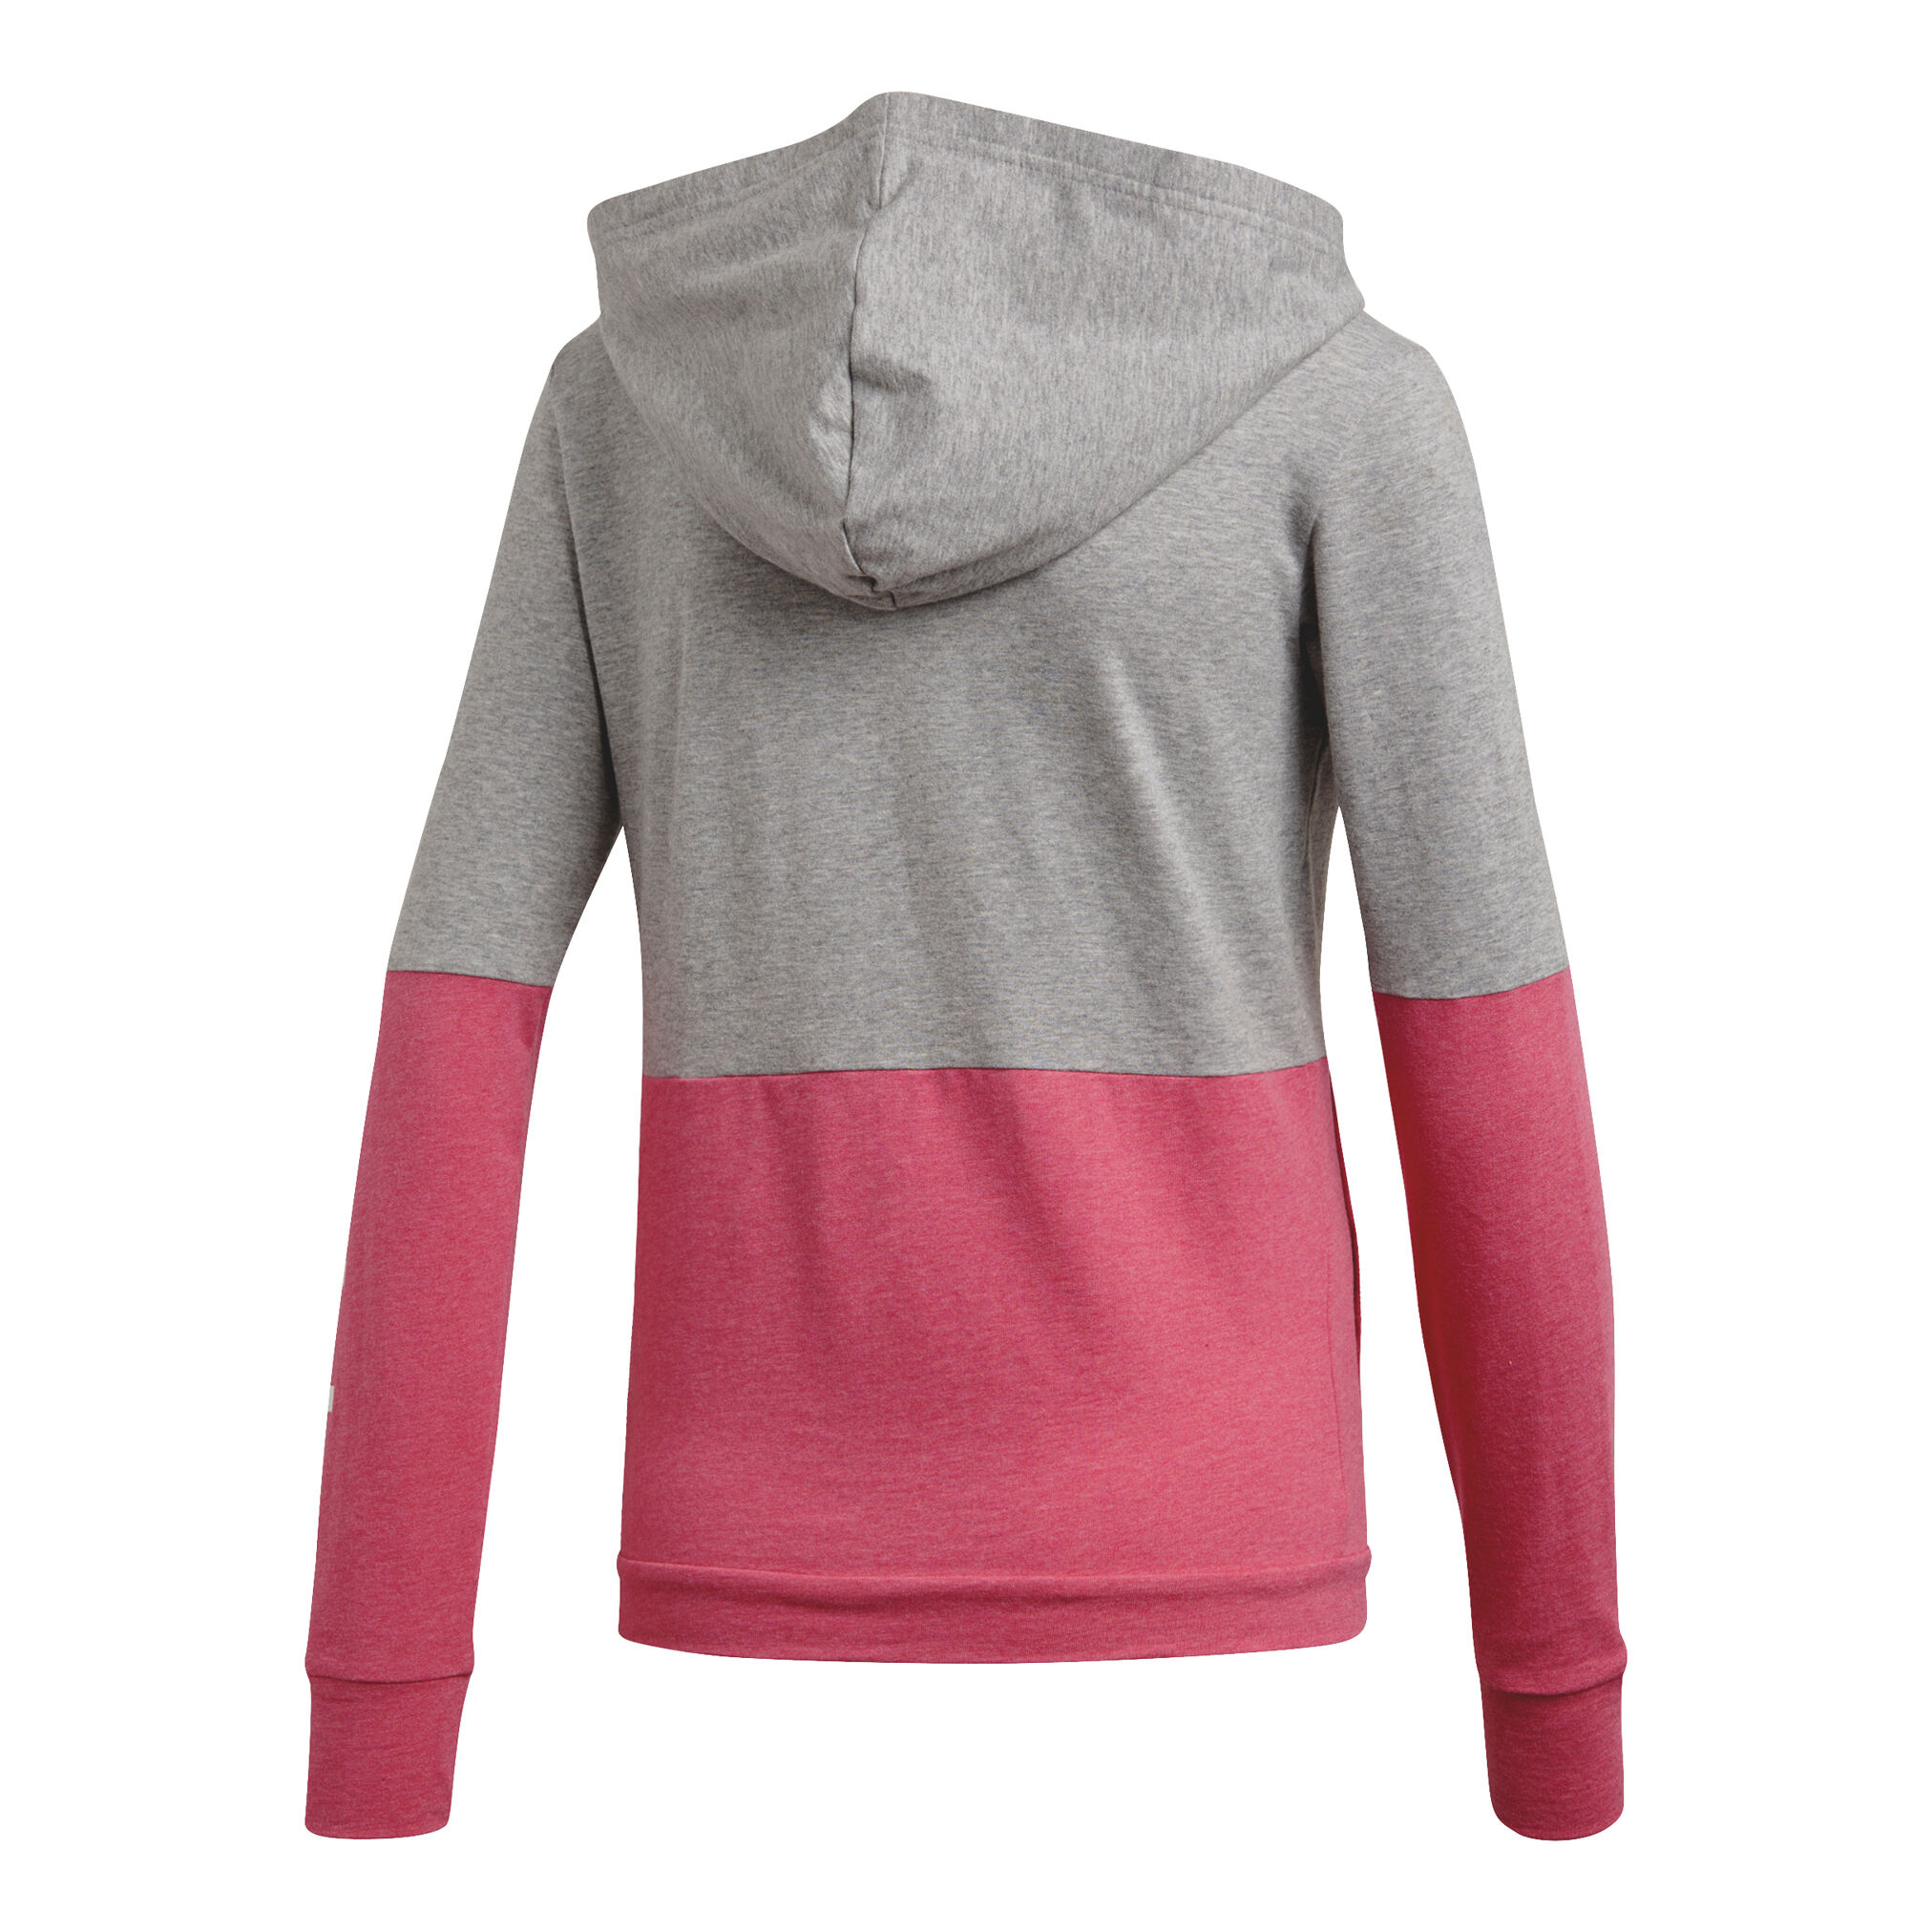 adidas Cotton Marker Trainingsanzug Damen Hellgrau, Rosa